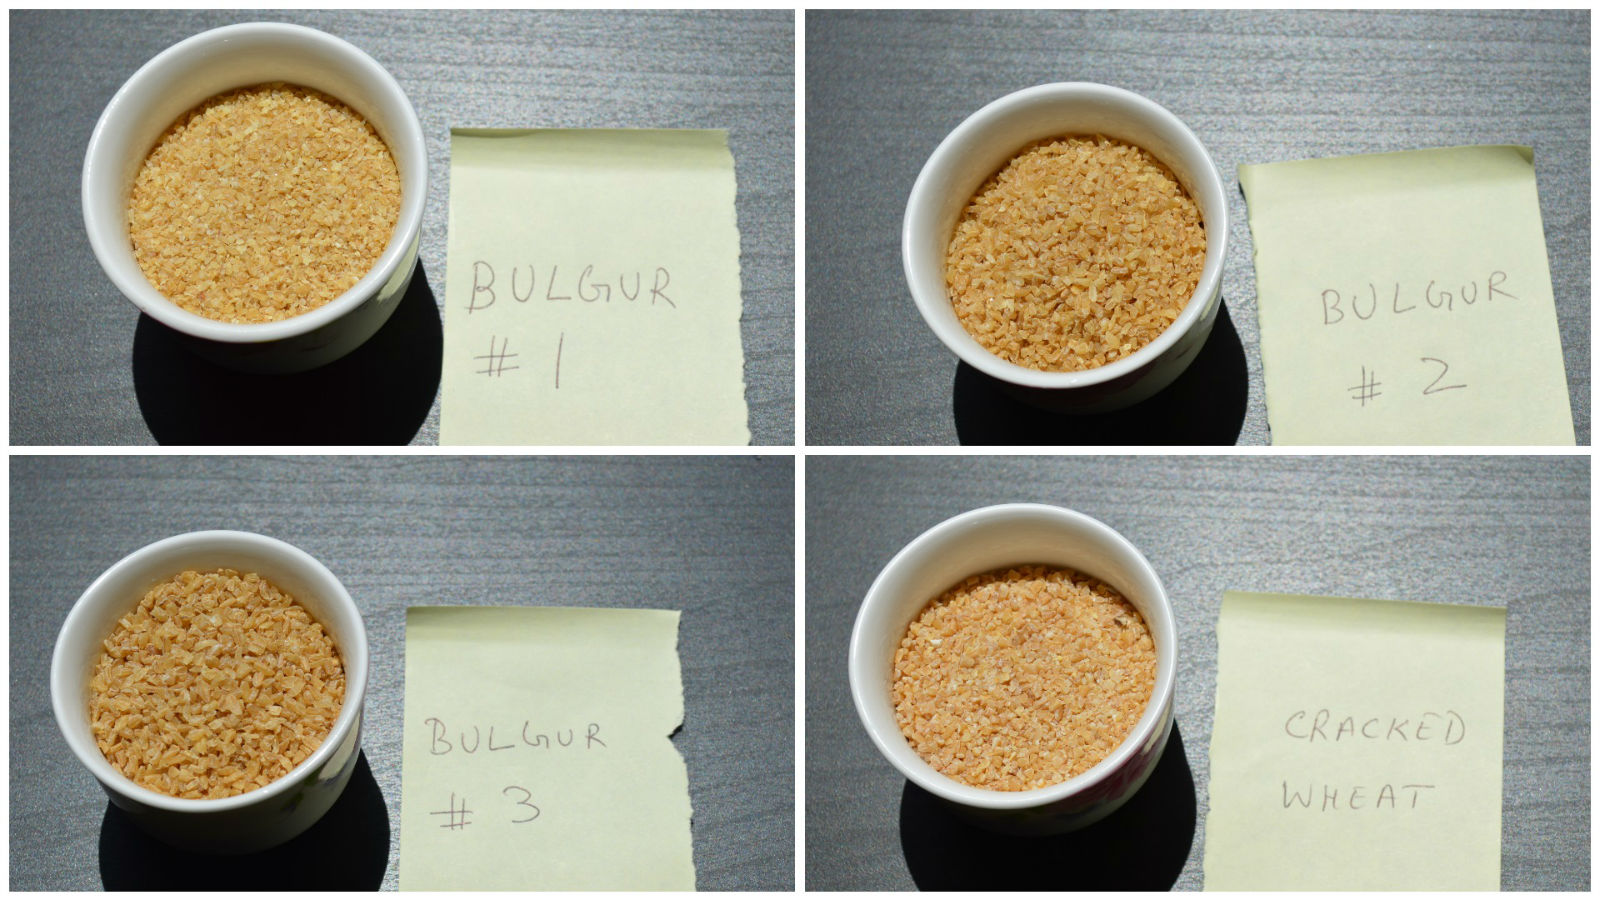 about bulgur - types